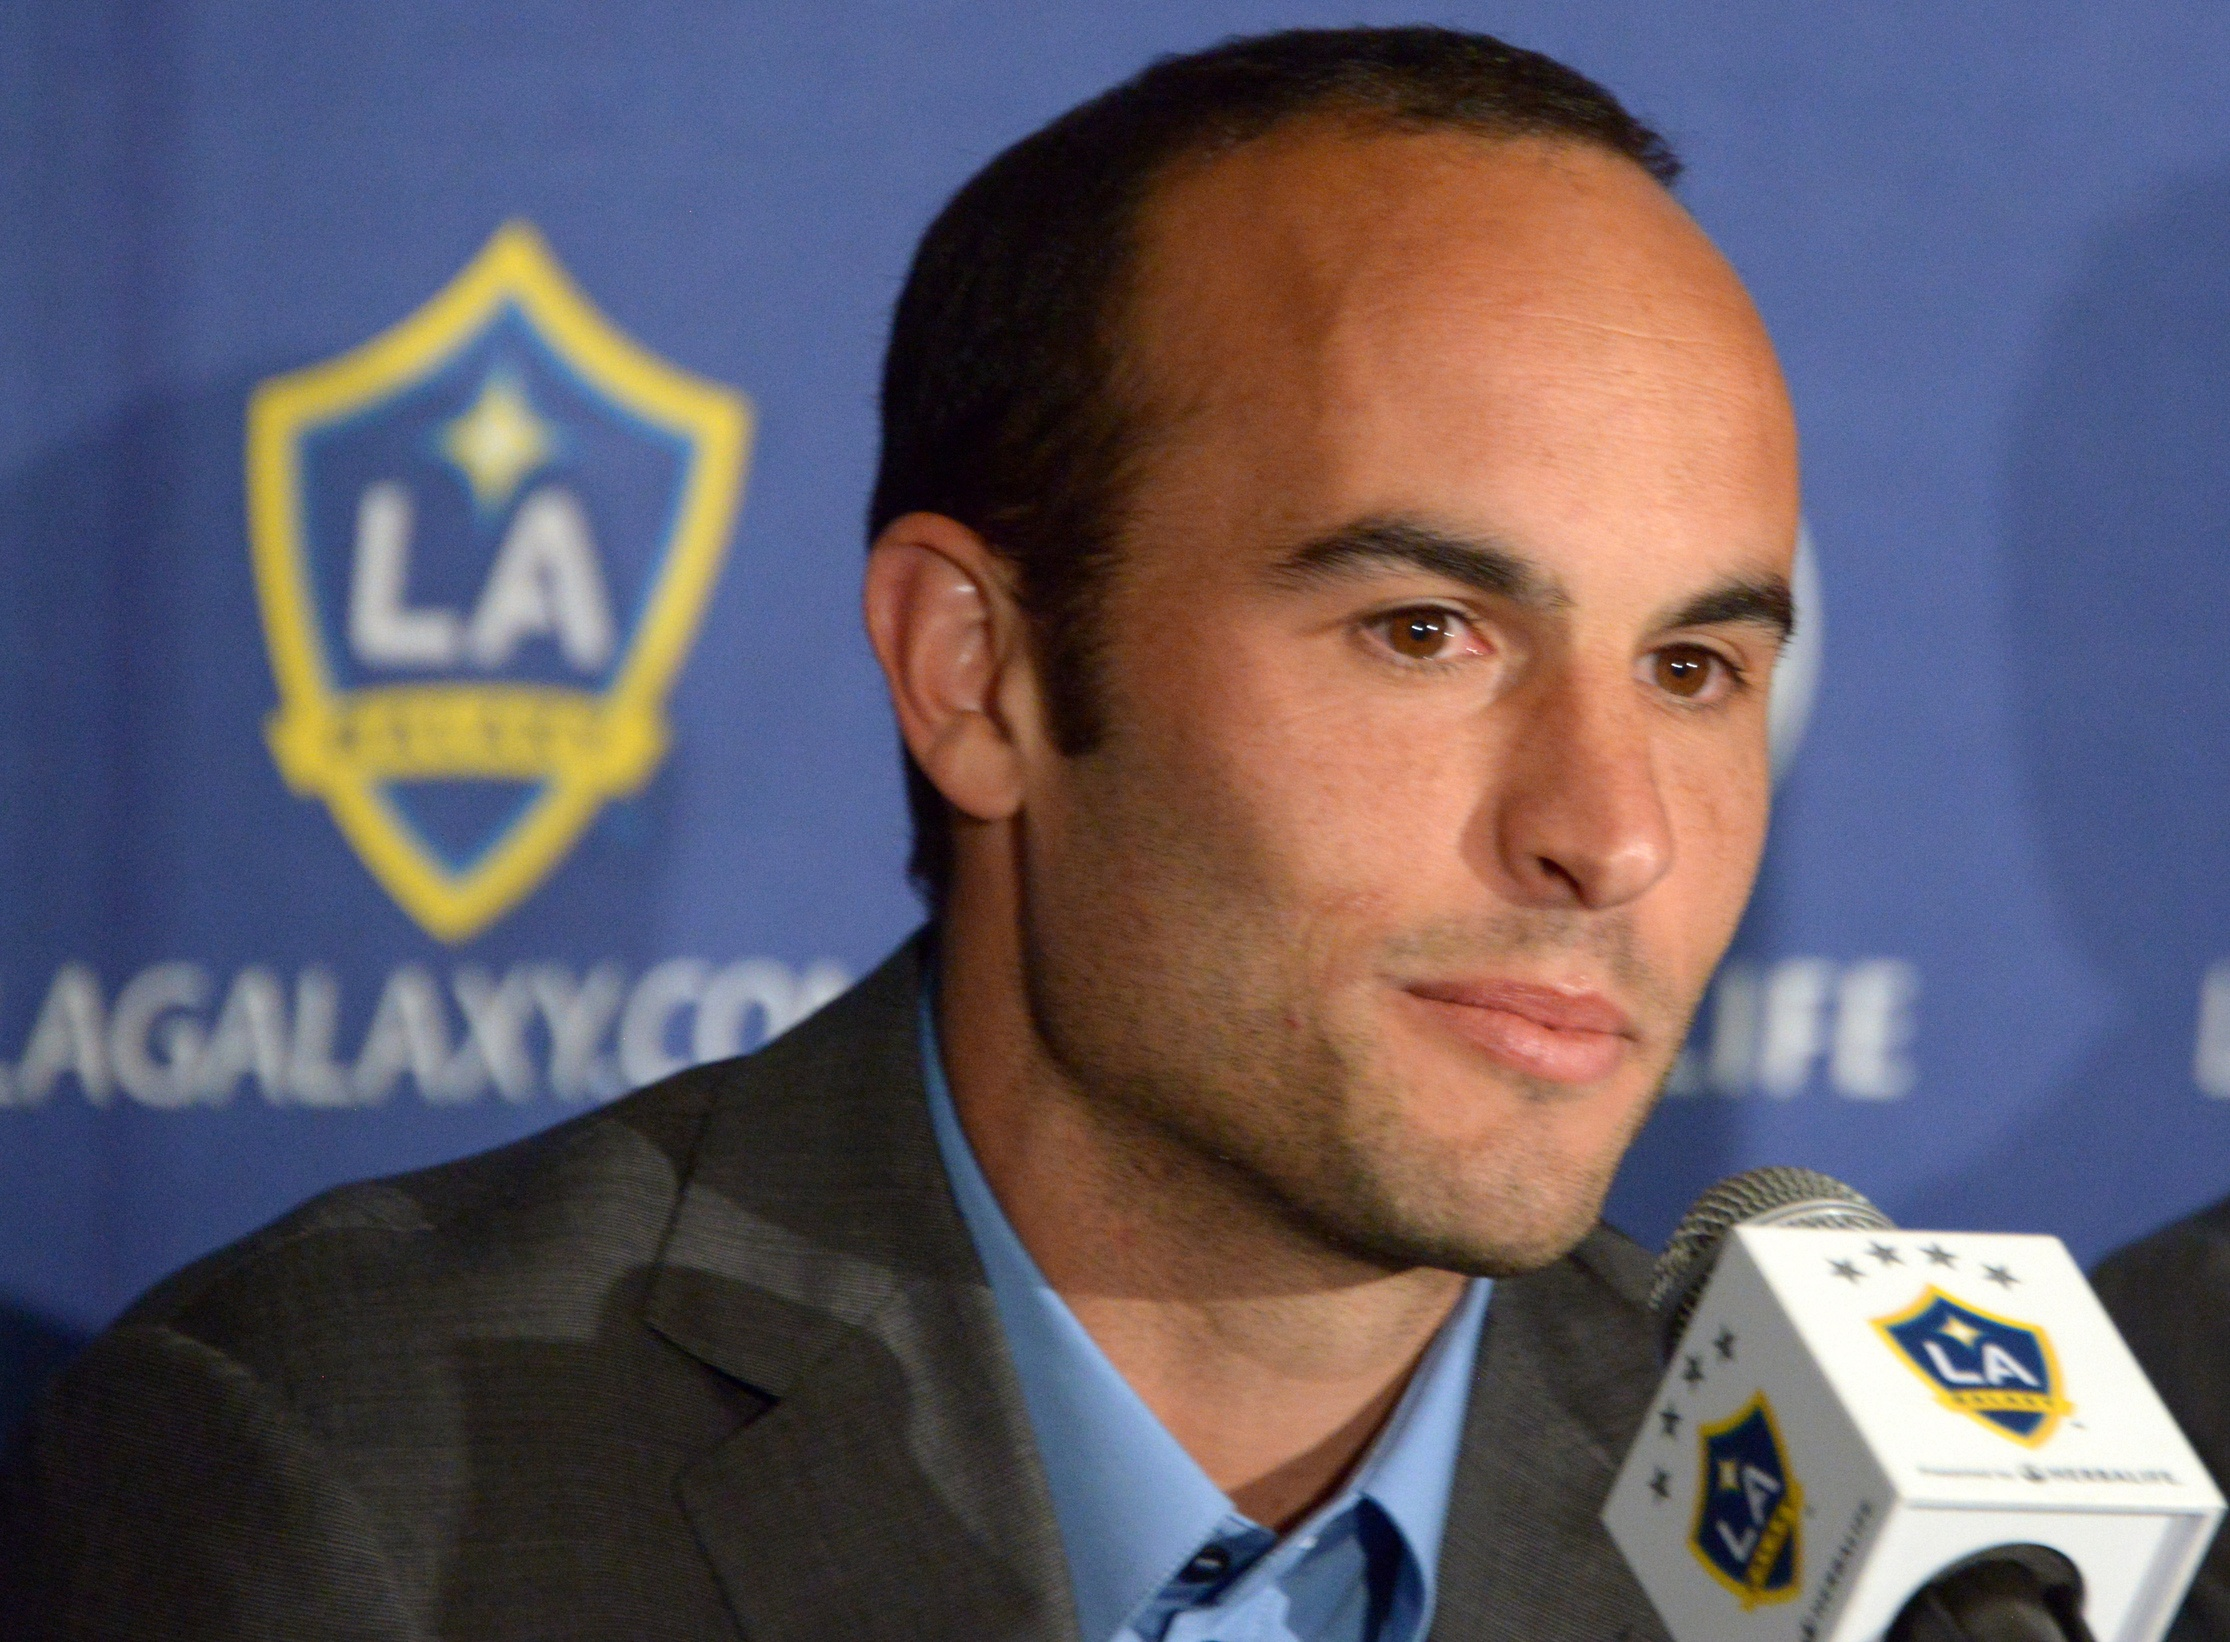 Landon Donovan Leaves Behind a Legacy as a Pioneer In US Soccer